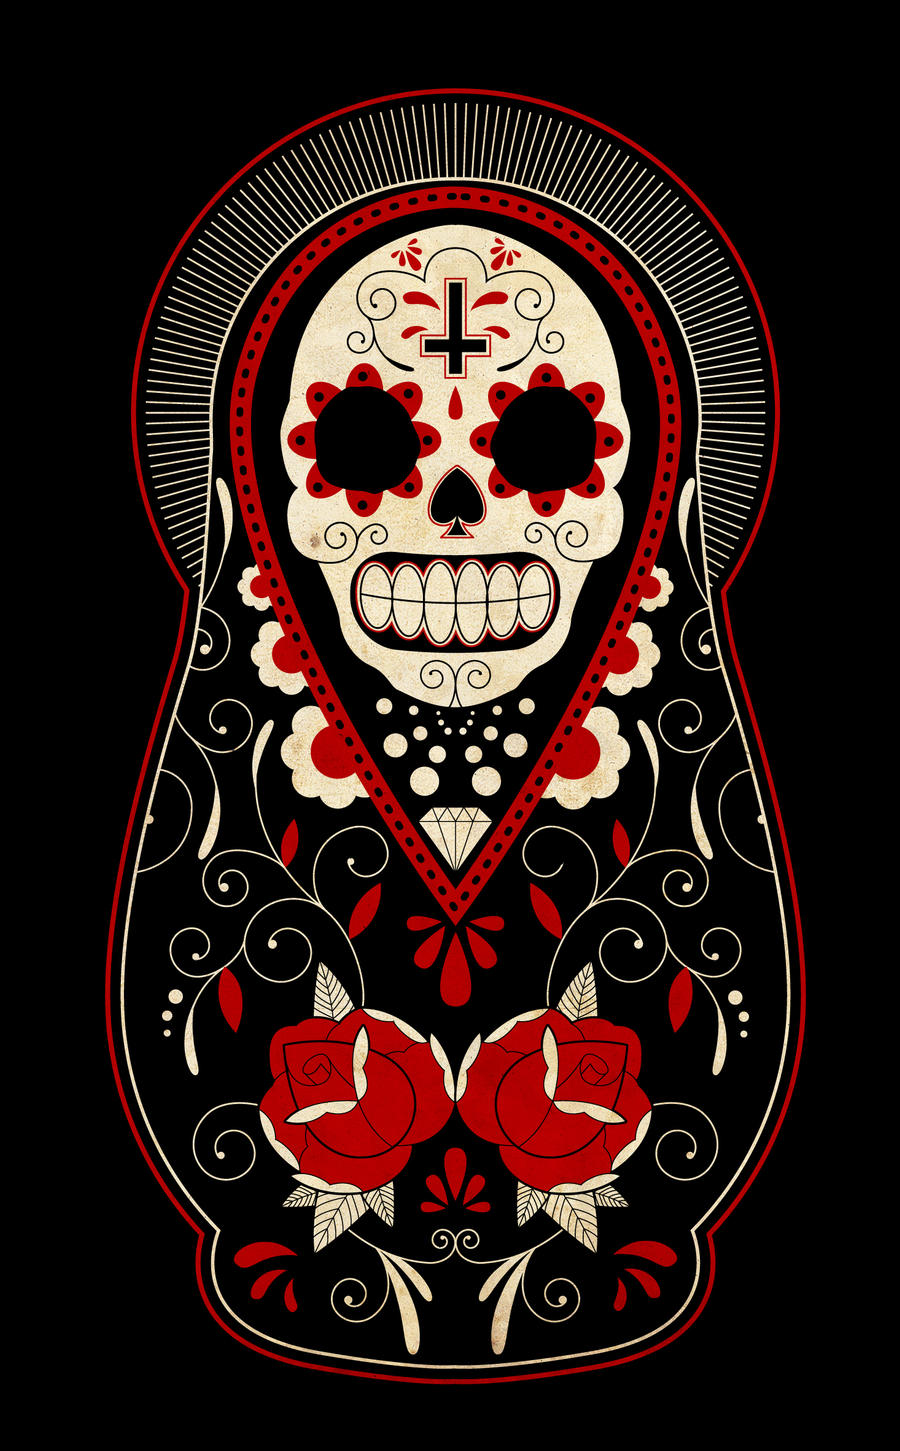 Day of the Dead Nesting Russian Dolls